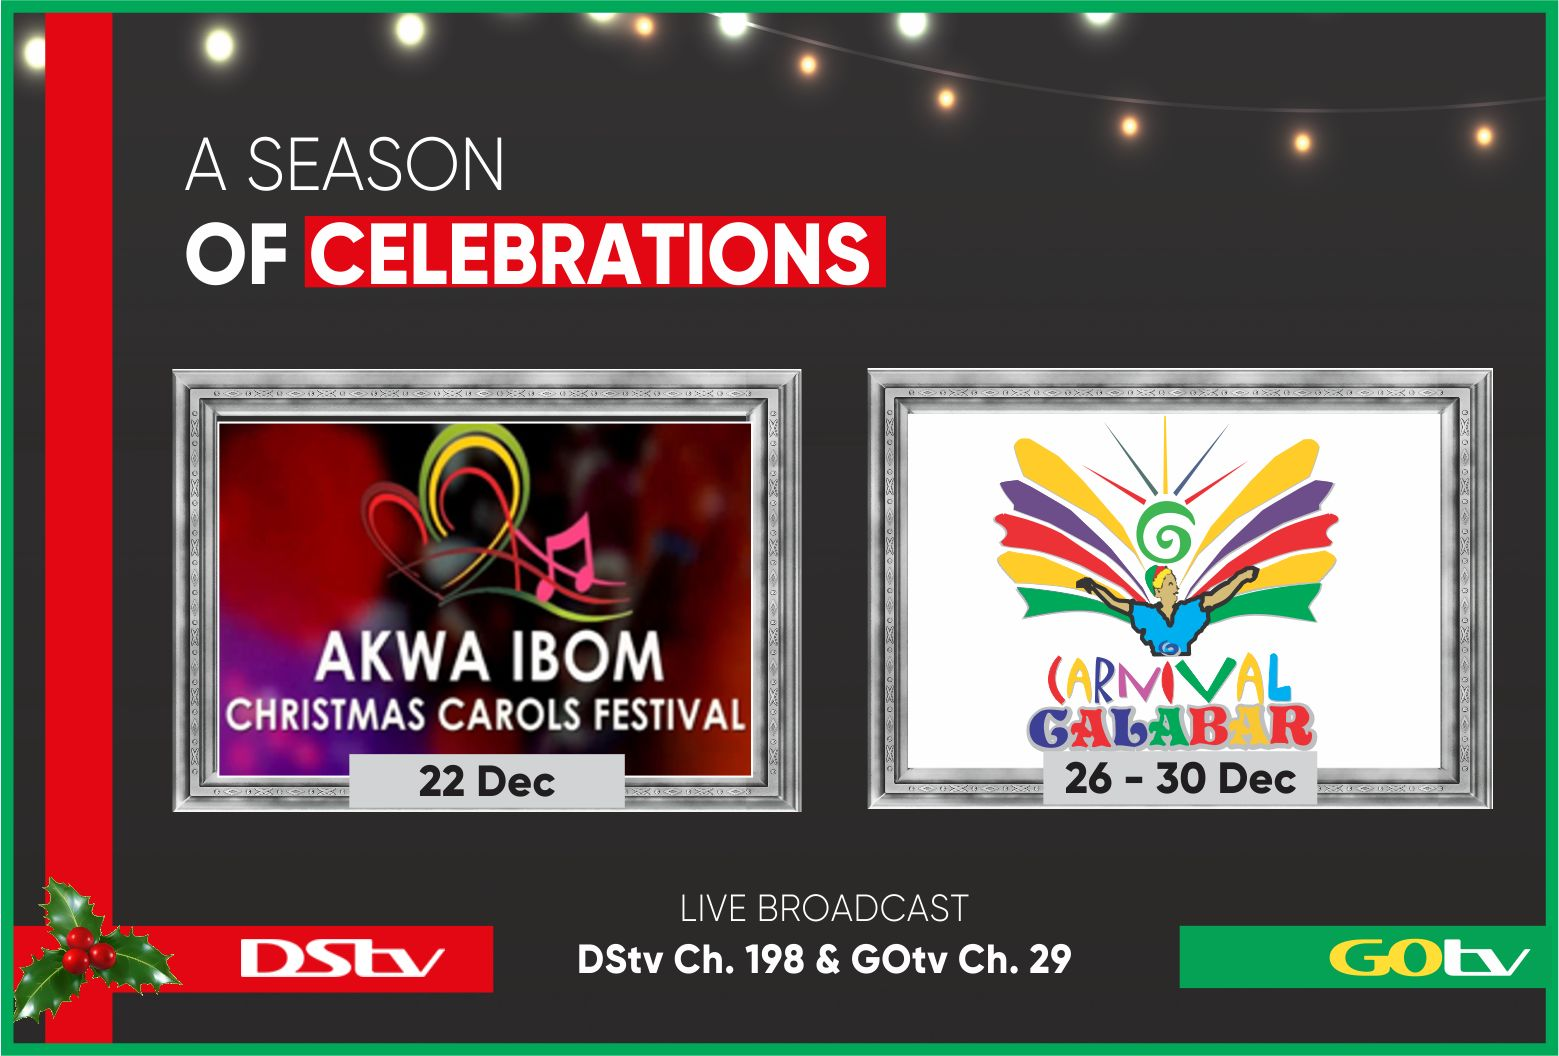 DStv, GOtv To Air Biggest Live Events Of The Festive Season on Pop-Up Channel